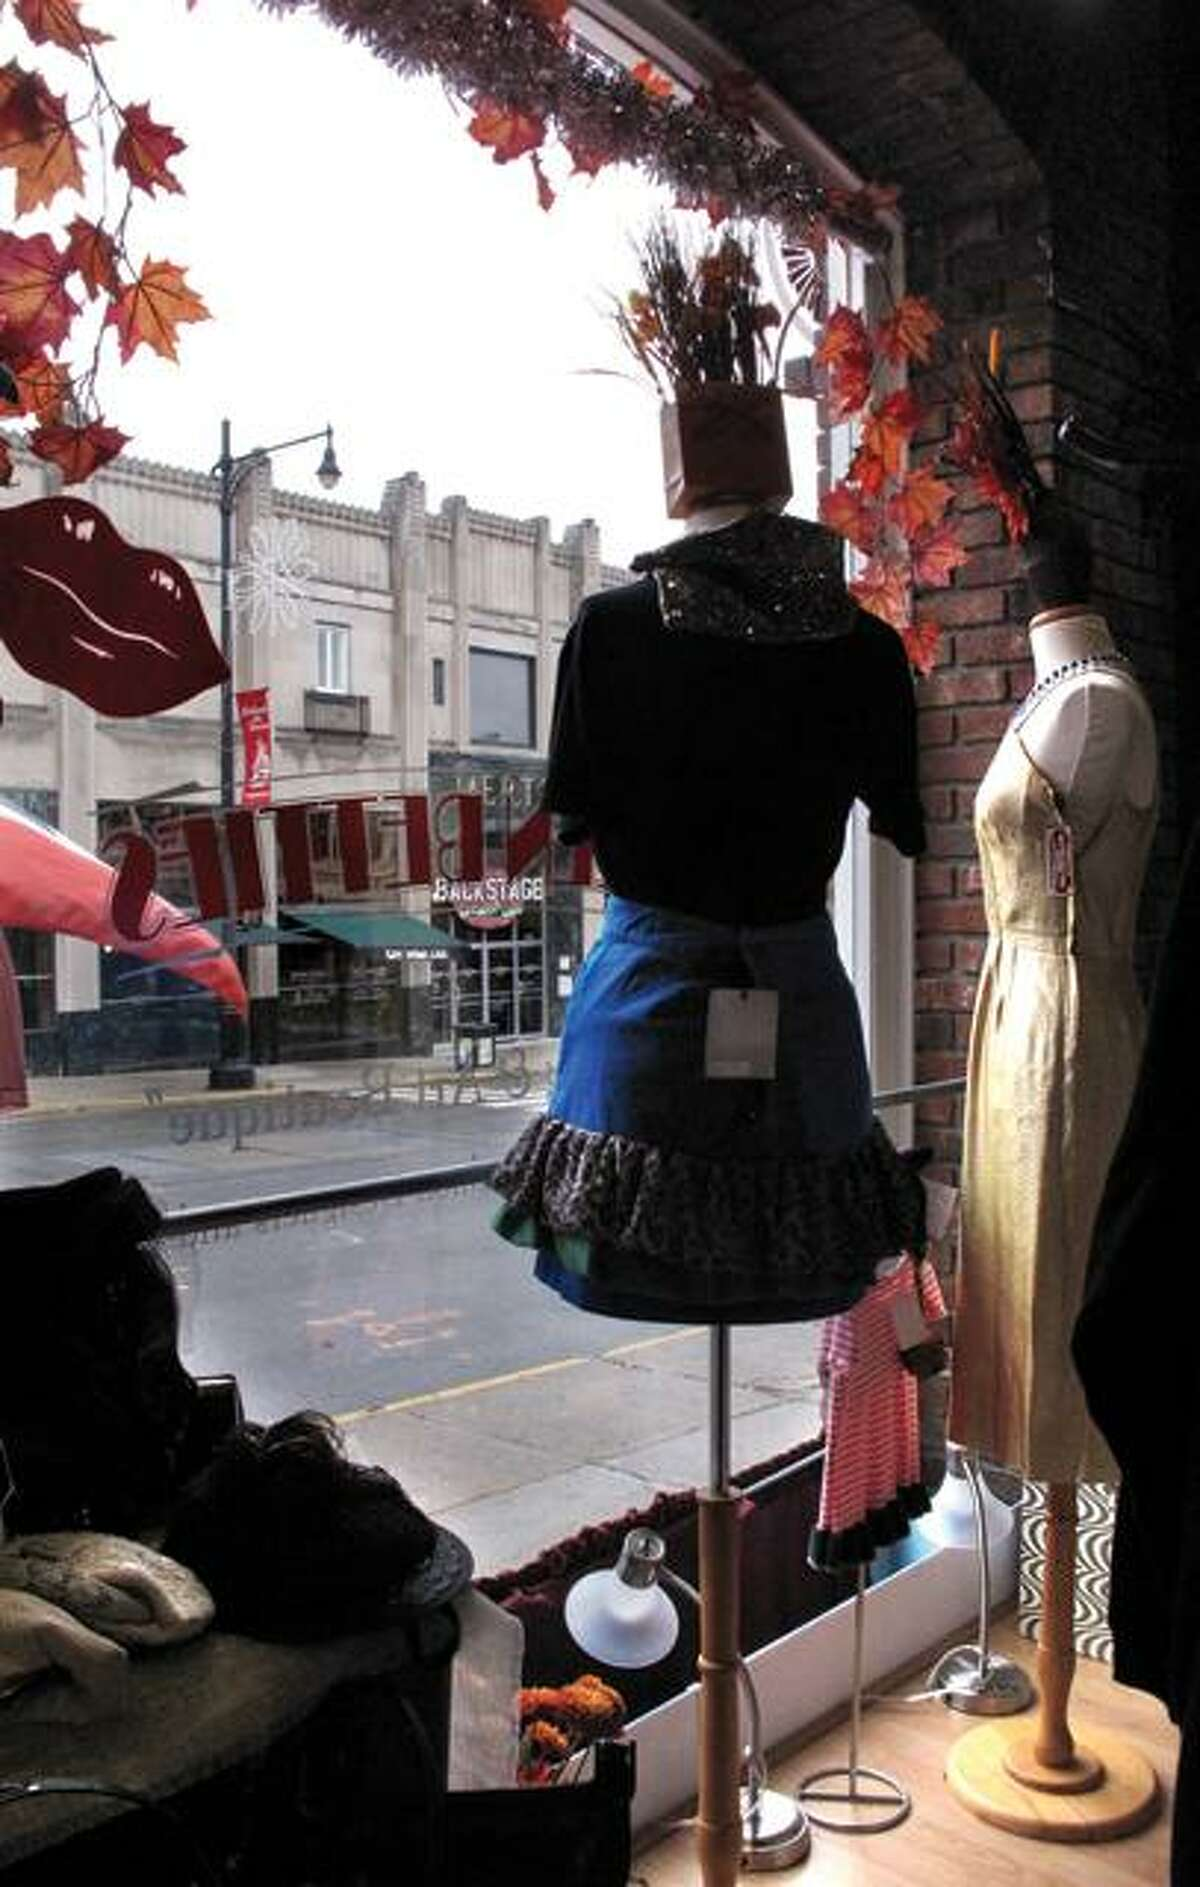 DEBBI MORELLO / Register Citizen Brazen Betties' showcase window is decorated in anticipation of Small Business Saturday this weekend. The day is set aside to recognize and support locally-owned businesses.